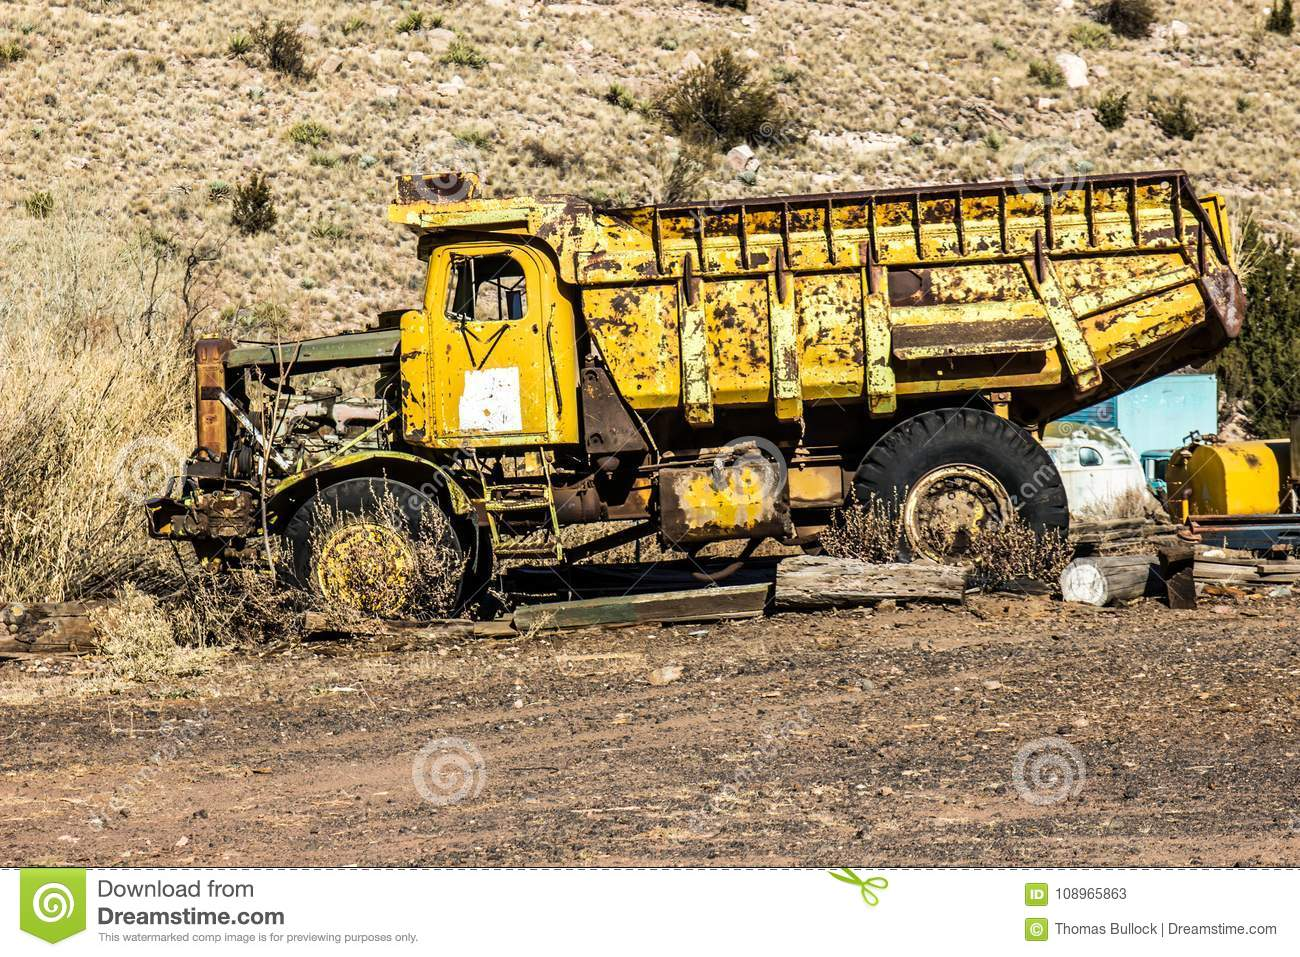 Vintage Dump Truck In Salvage Yard Stock Image - Image of